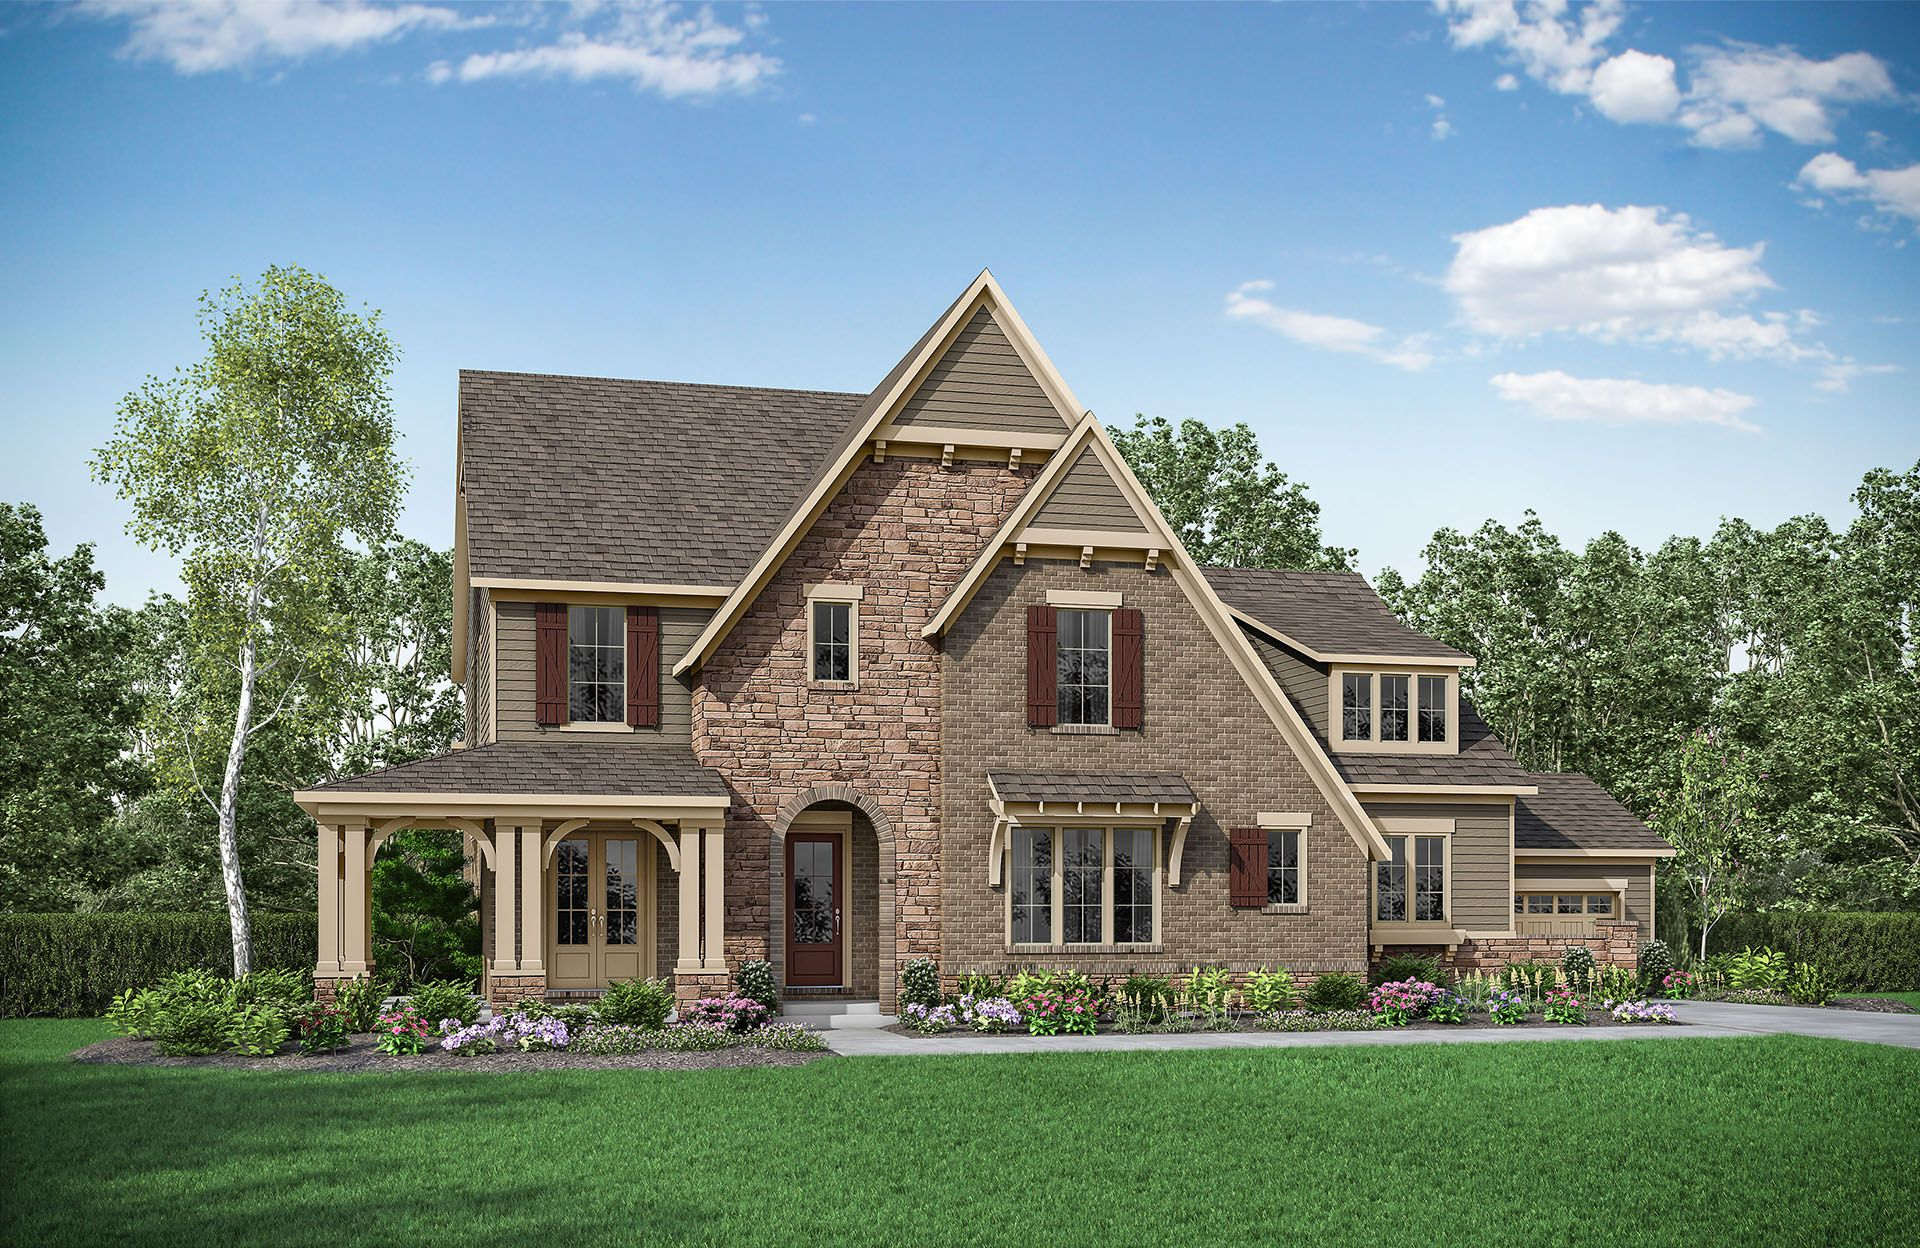 Single Family for Active at Oakton 41209 Chatham Green Circle Aldie, Virginia 20105 United States